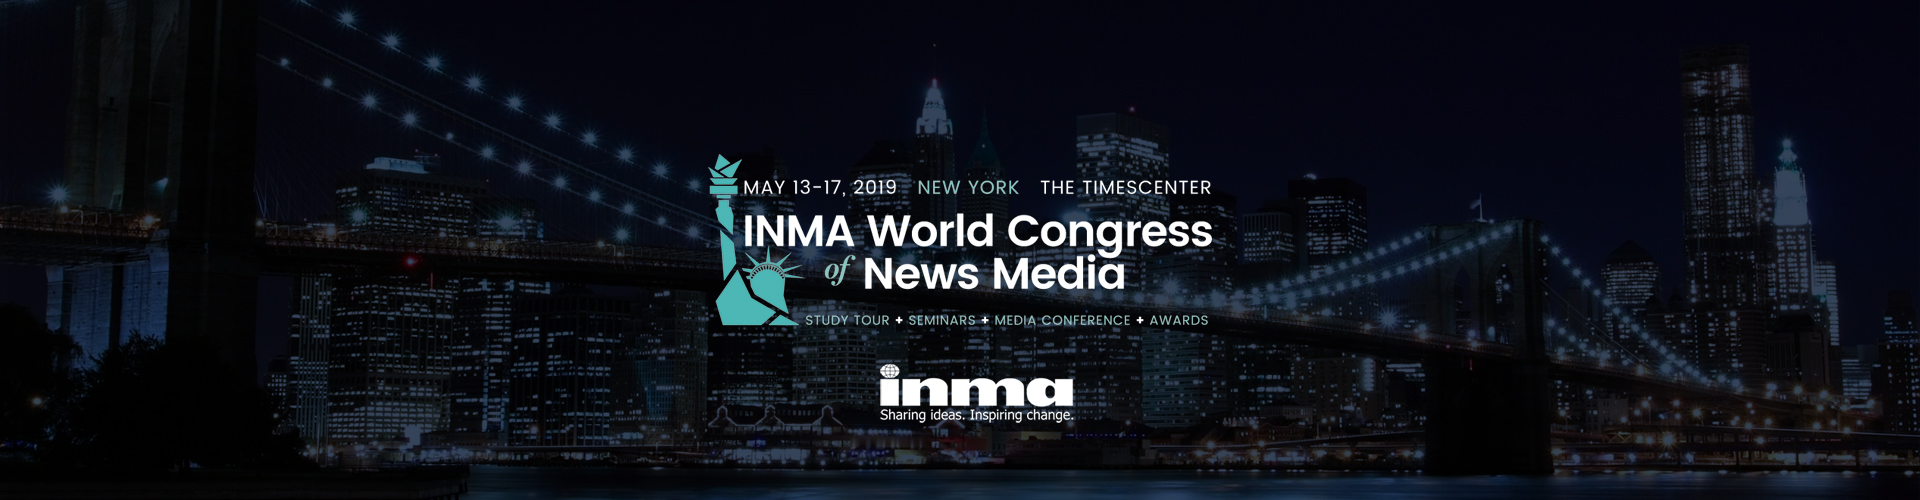 PageSuite Are Heading to New York for the INMA World Congress